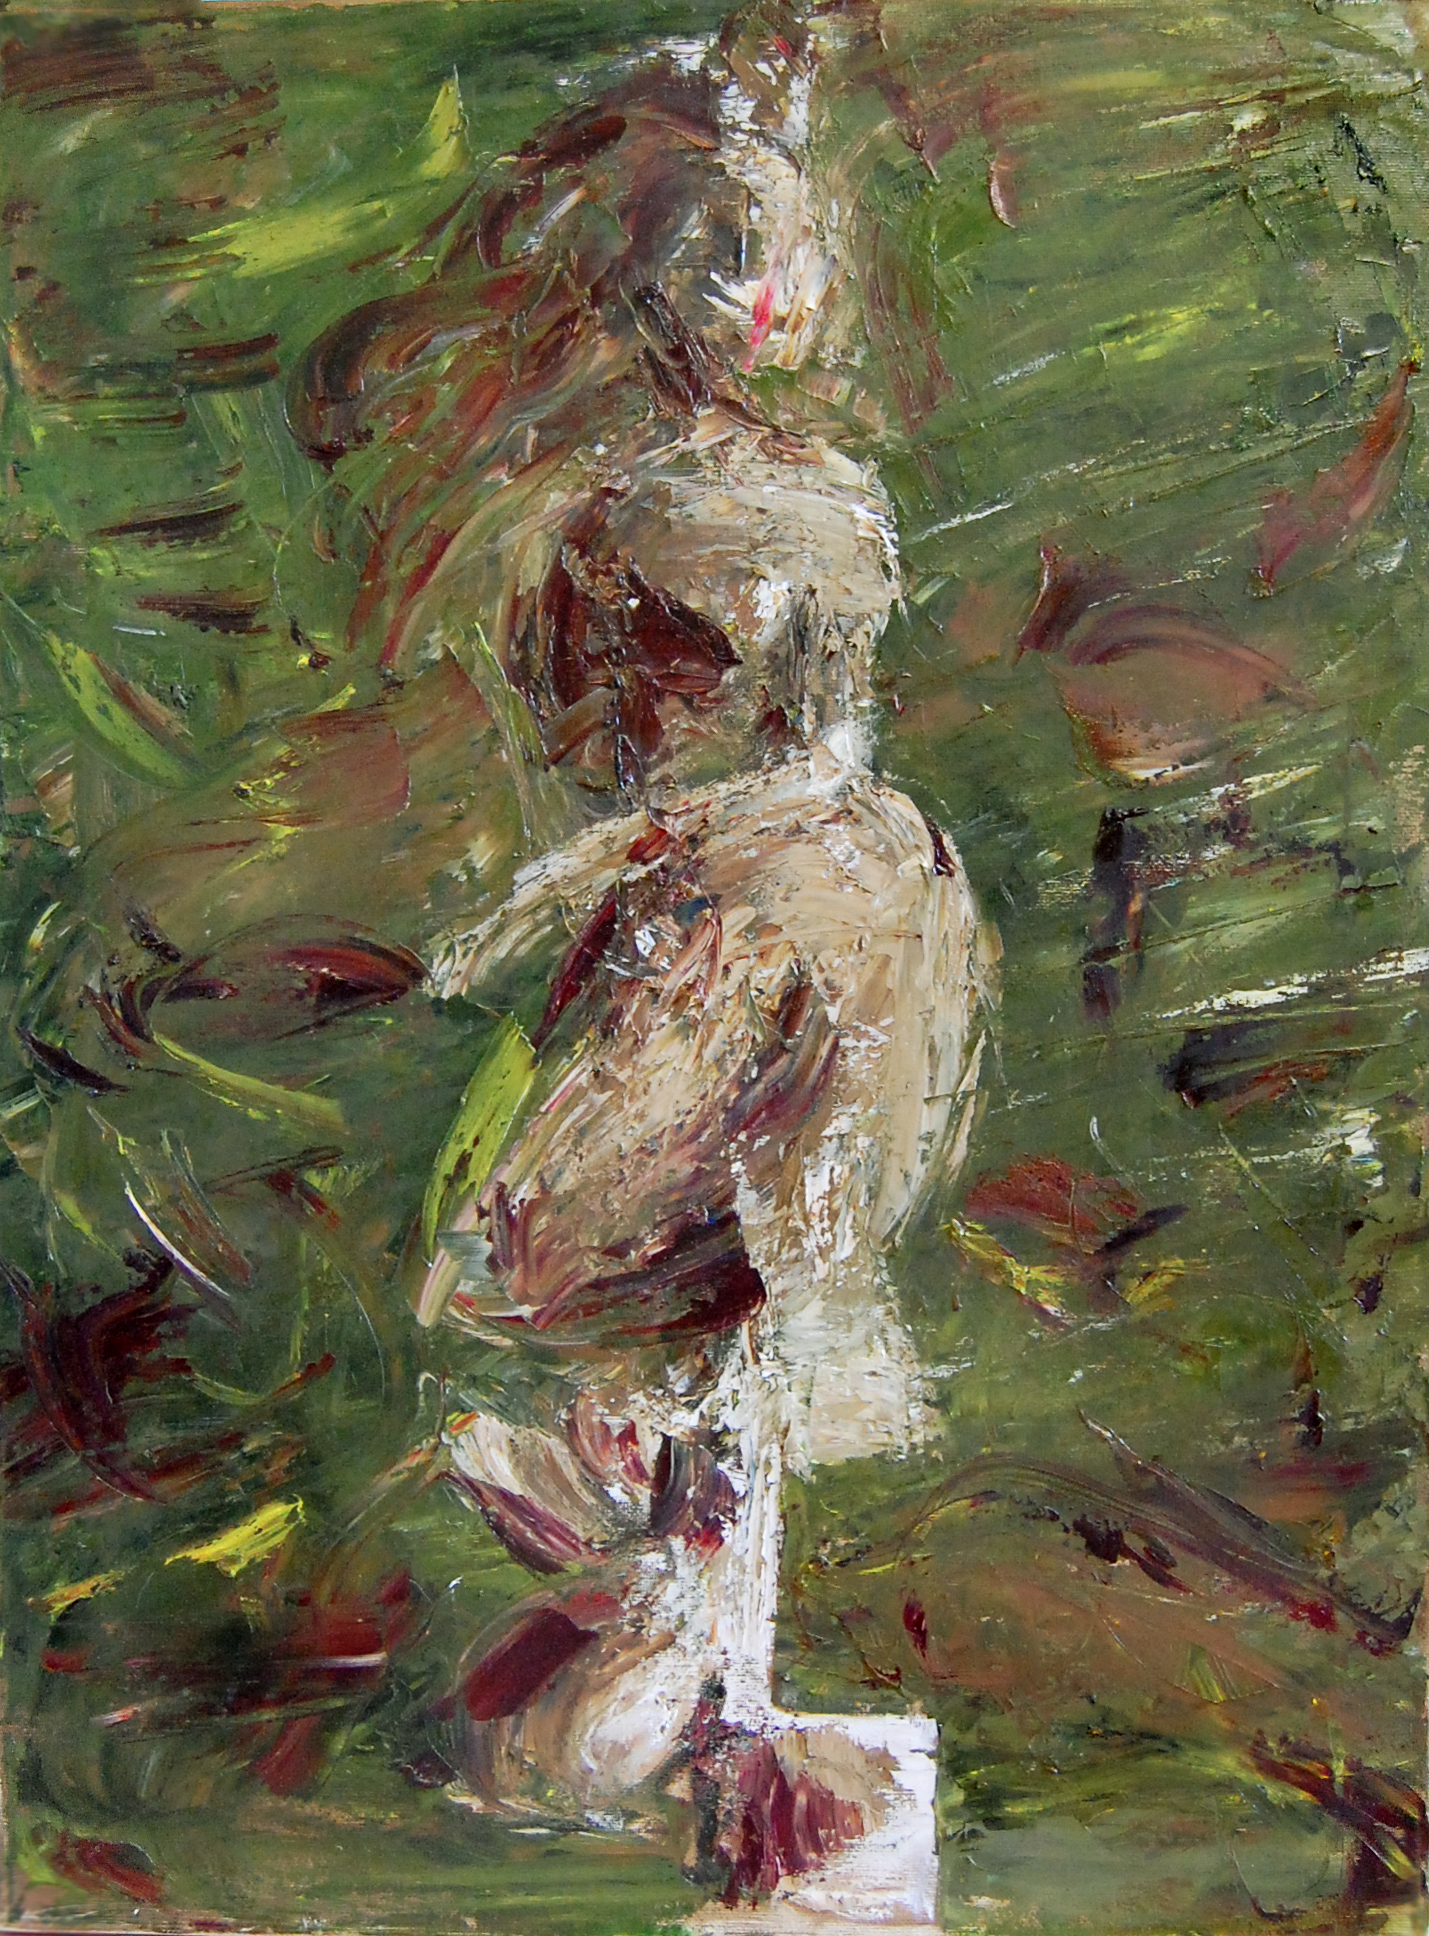 Nature-ous dancer, Moss and Flowers,  2012   Oil on canvas